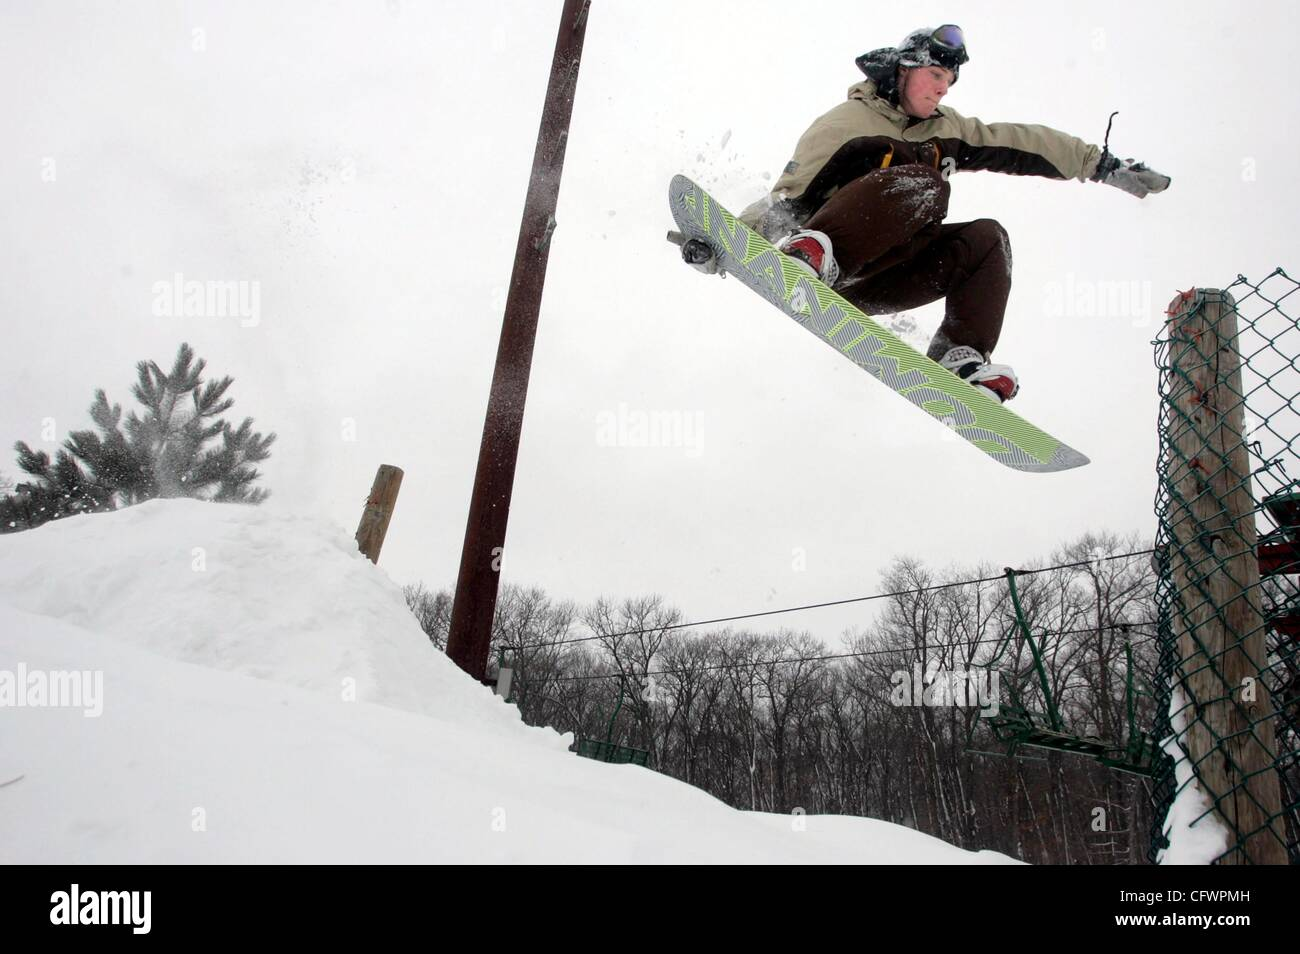 Mar 02, 2007 - Taylors Falls, MN, United States - SEAN MUSSETTER, 19, of St. Paul, MN worked on his jumps at Wild Stock Photo